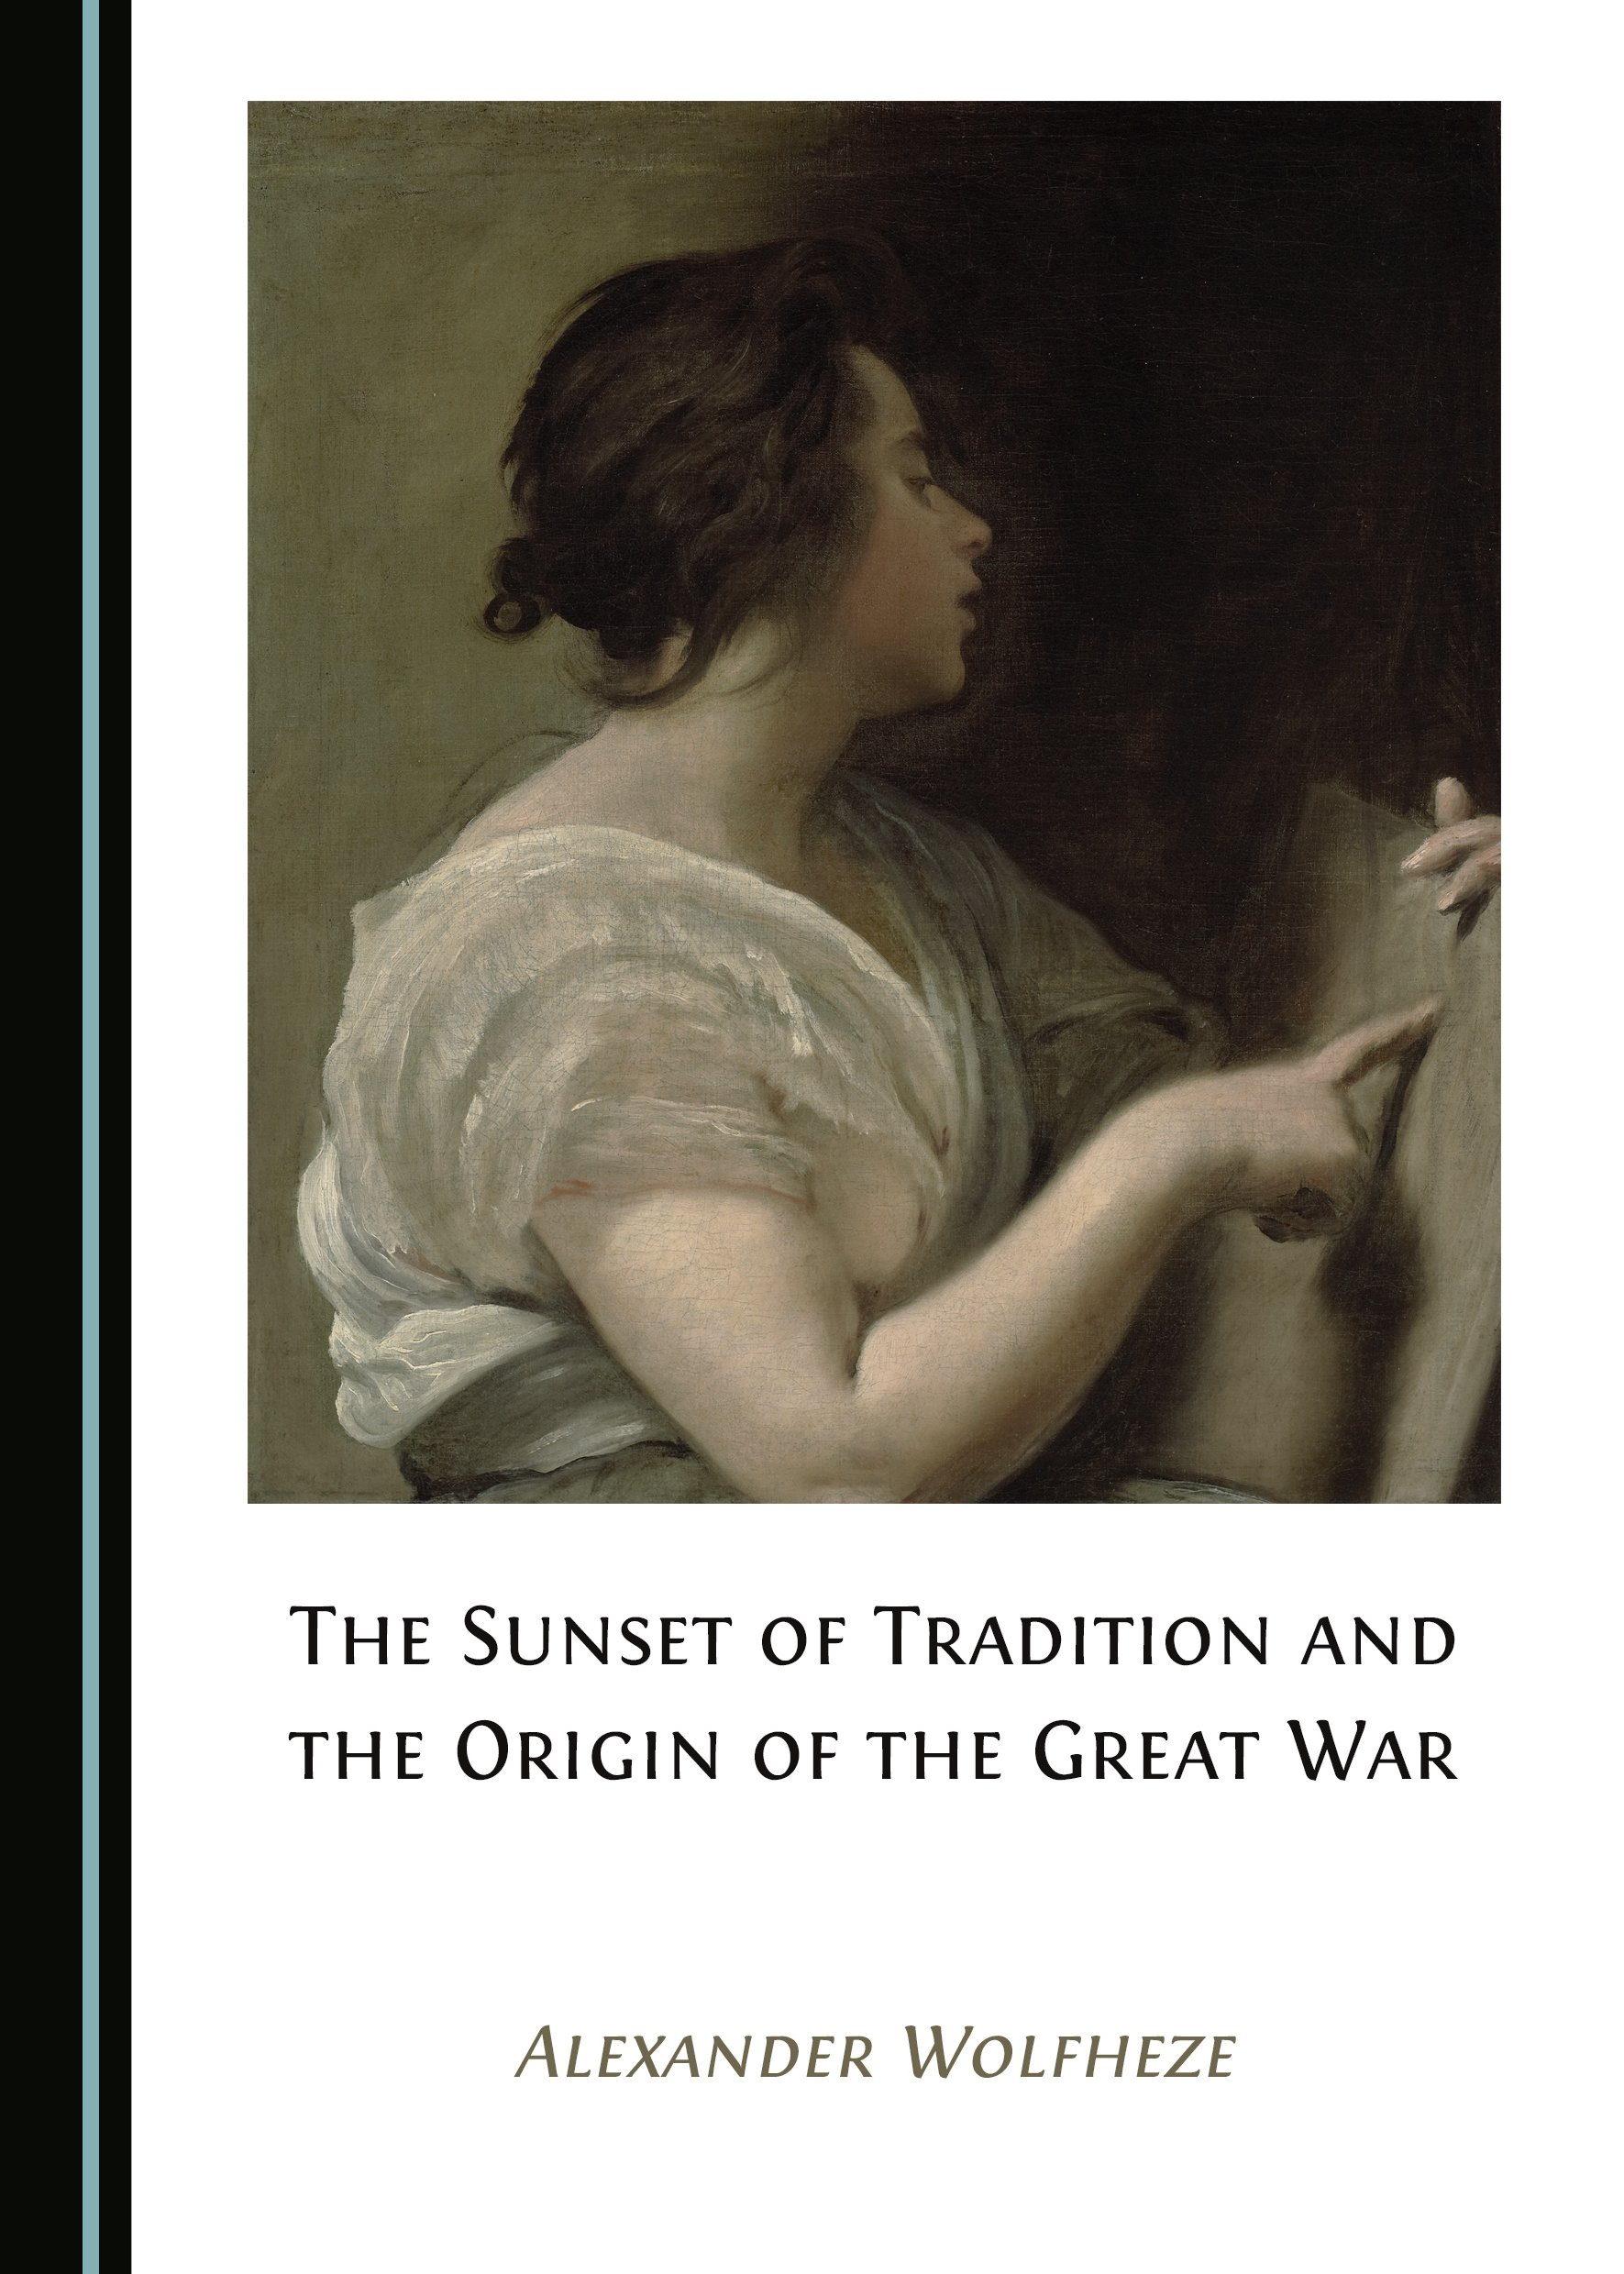 The Sunset of Tradition and the Origin of the Great War